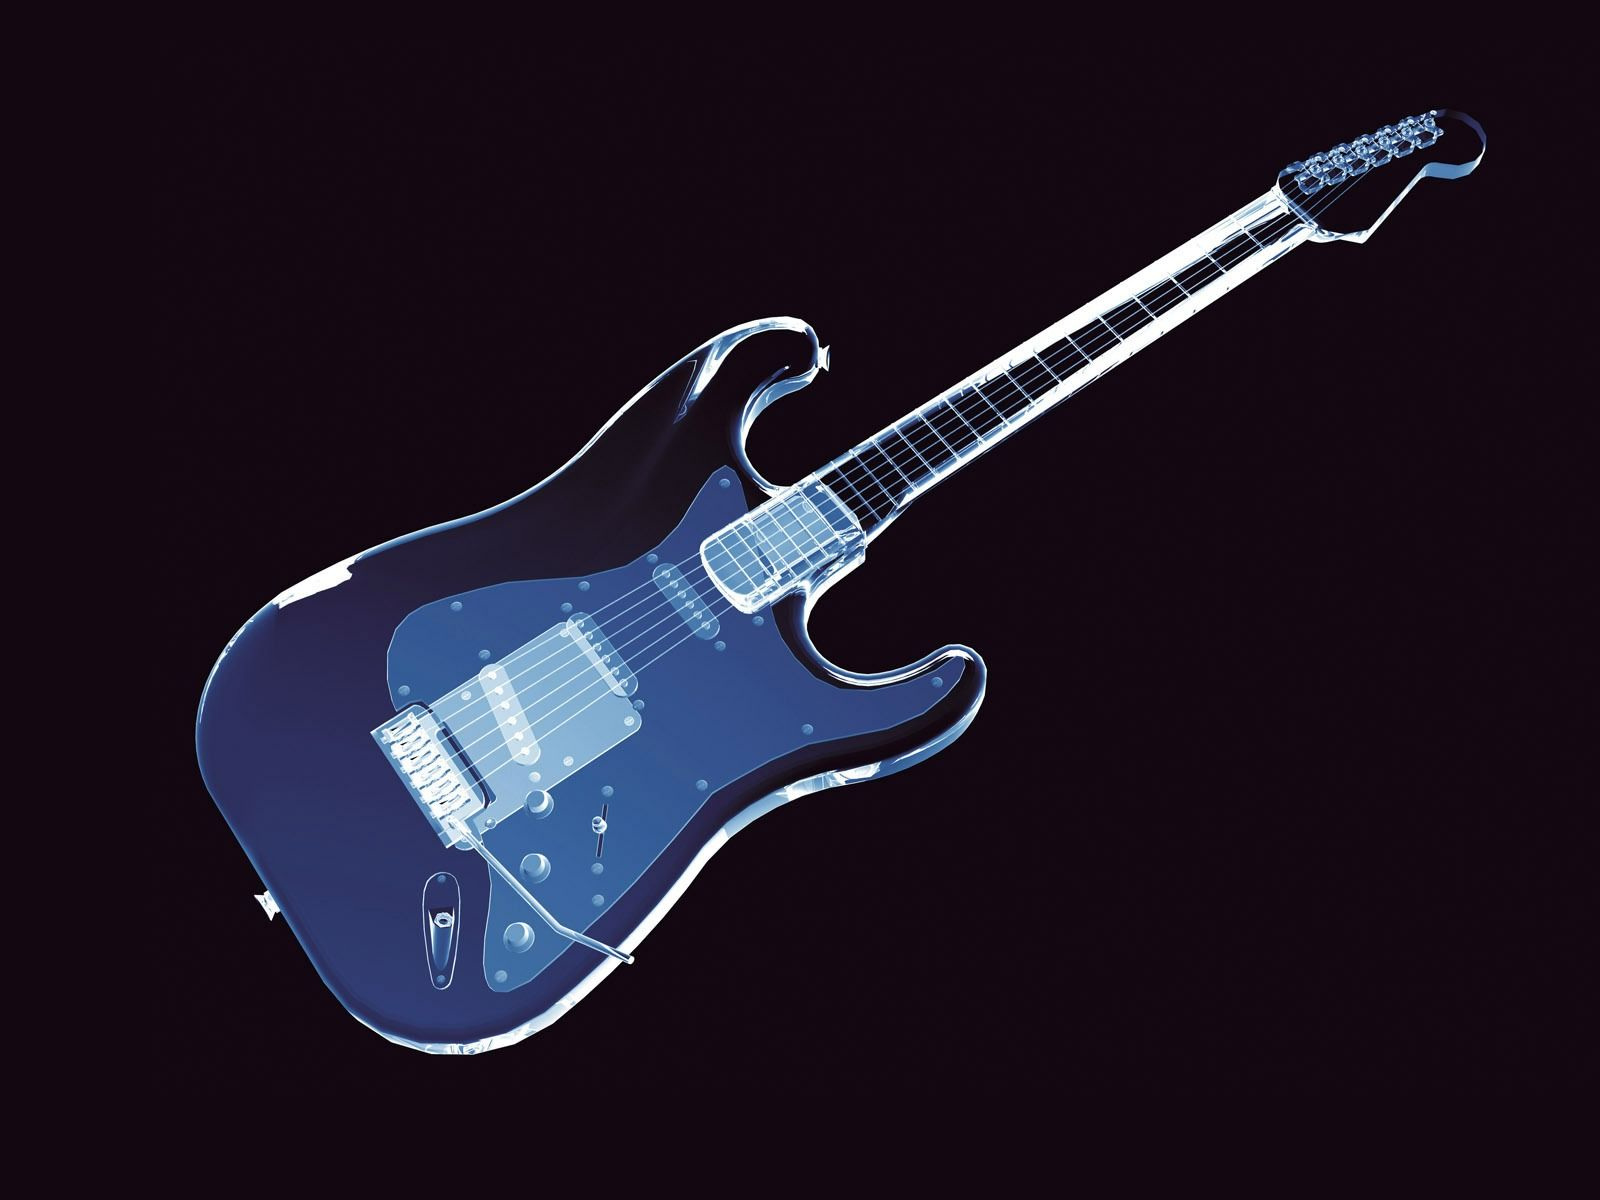 Awesome Neon Guitar Wallpaper Abstract Hd 3d